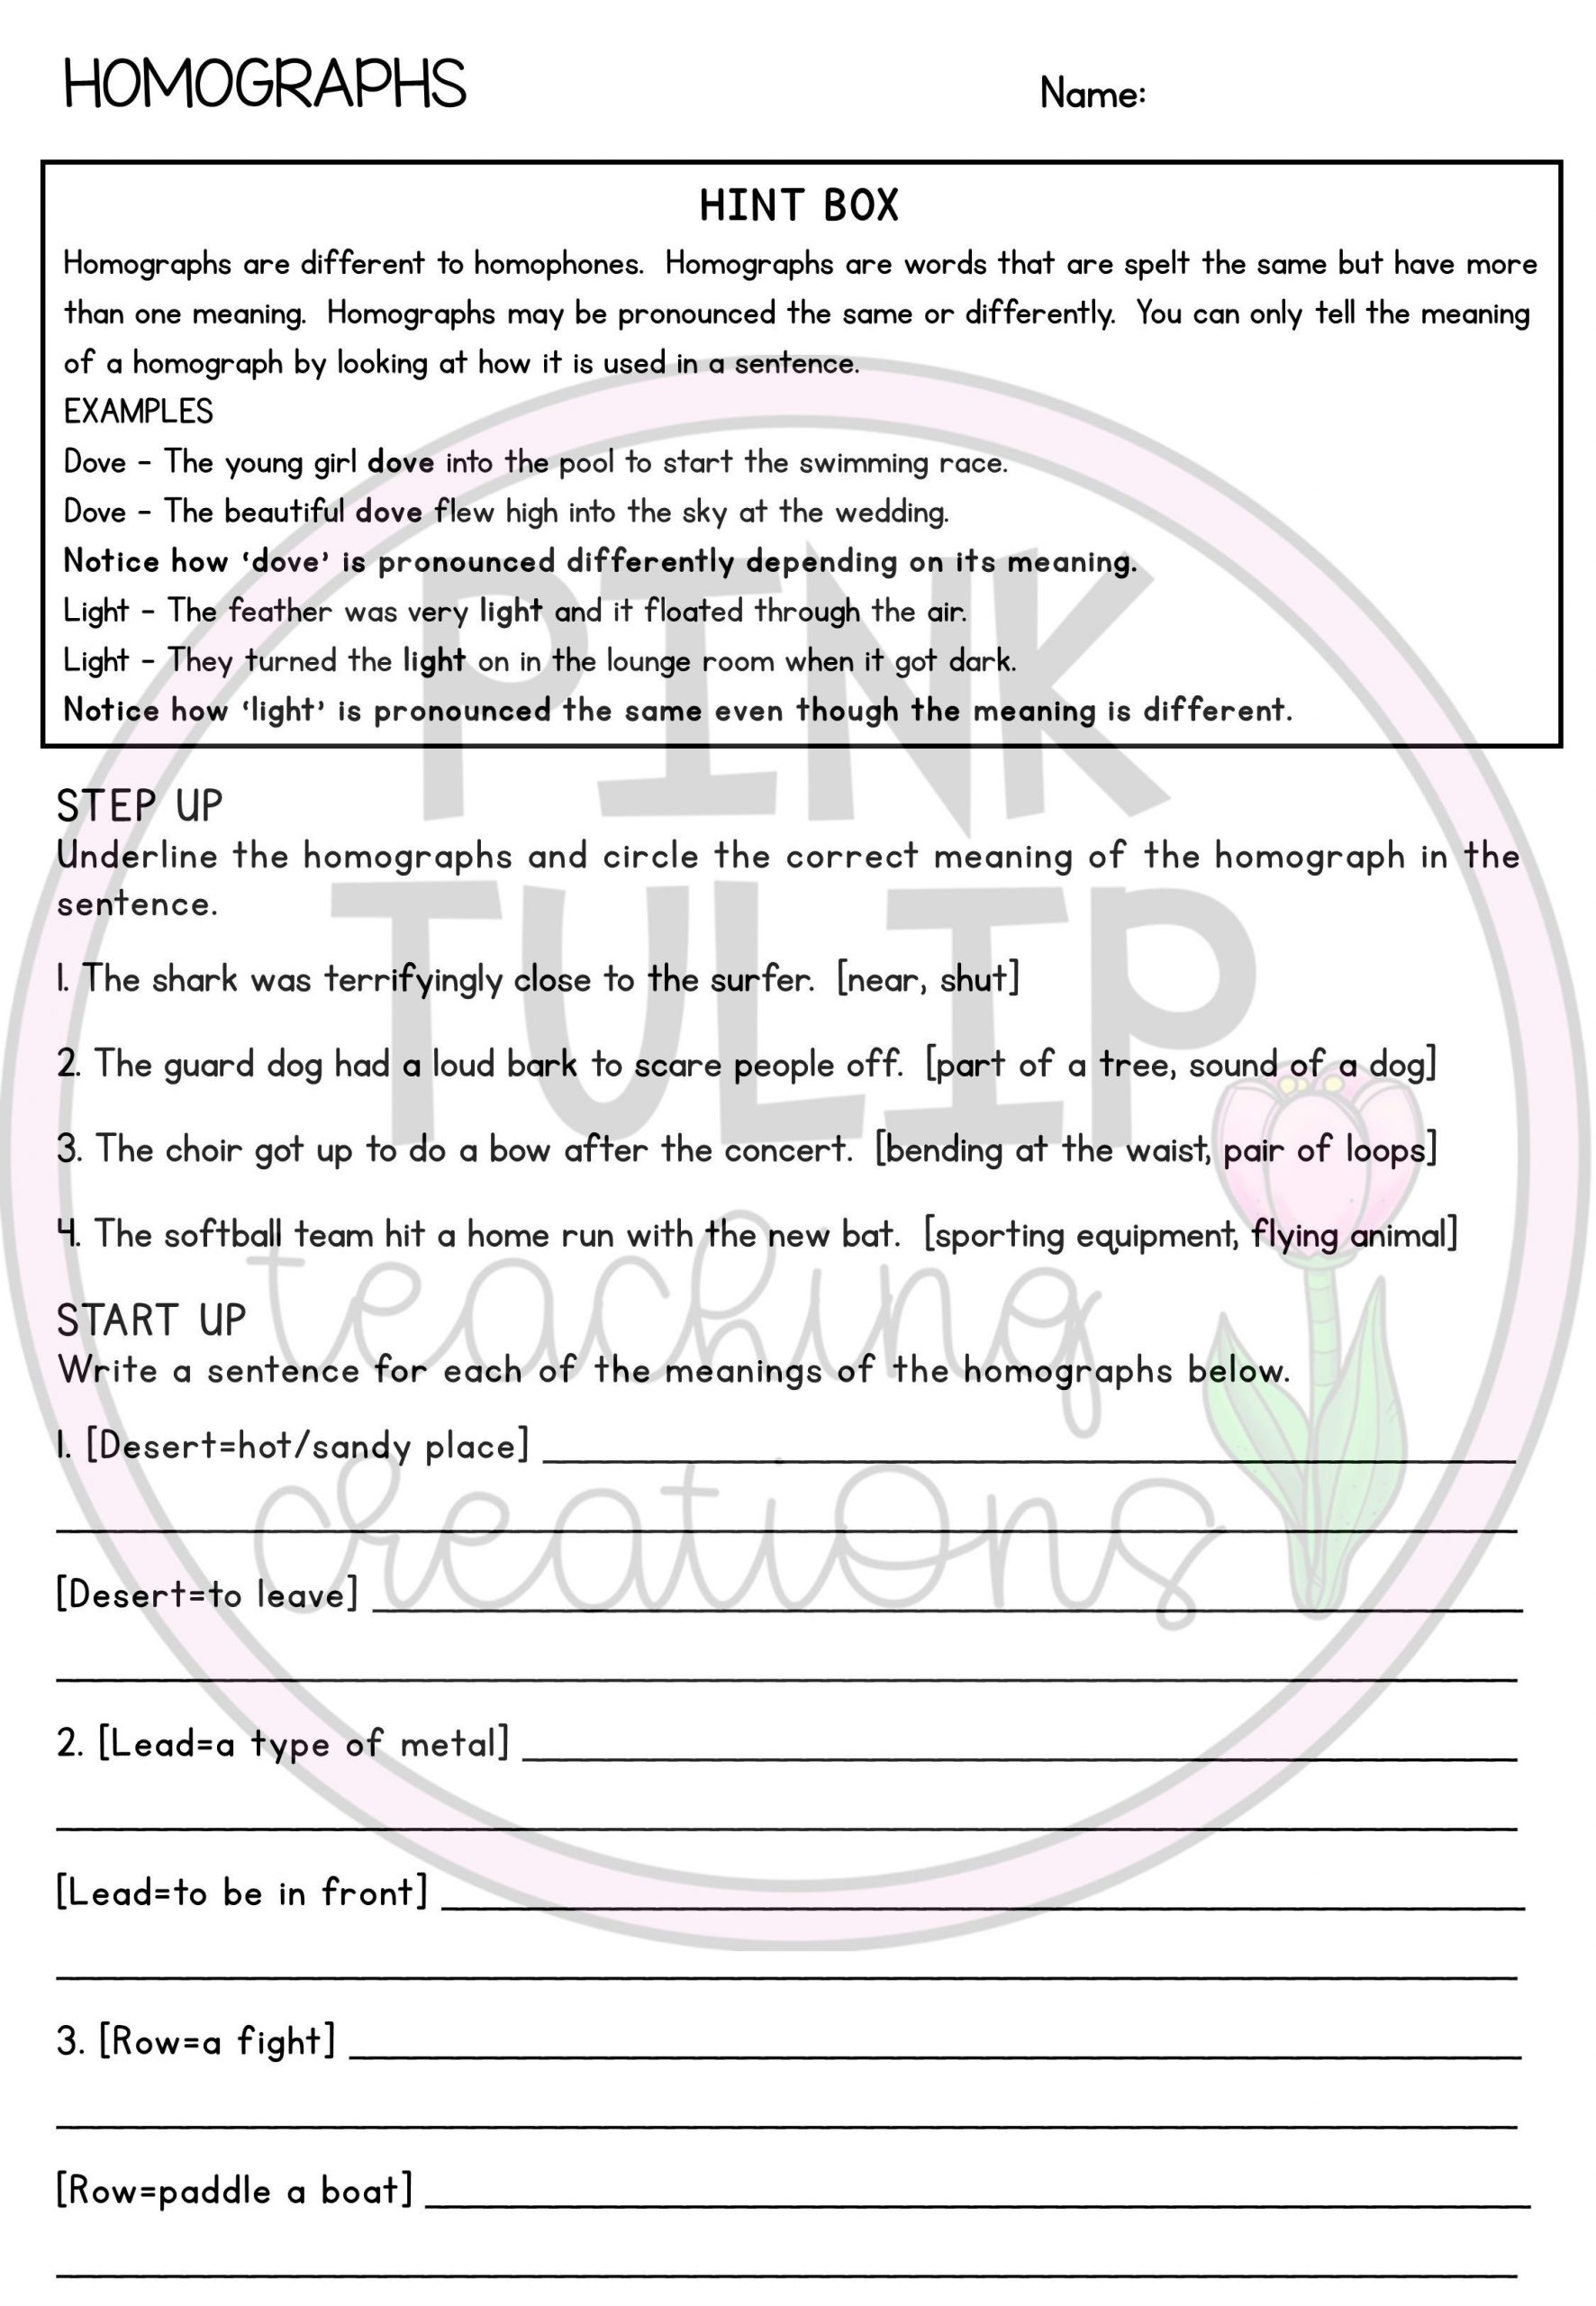 Homographs Worksheet 3rd Grade Homophones and Homographs Grammar Worksheets with Answers